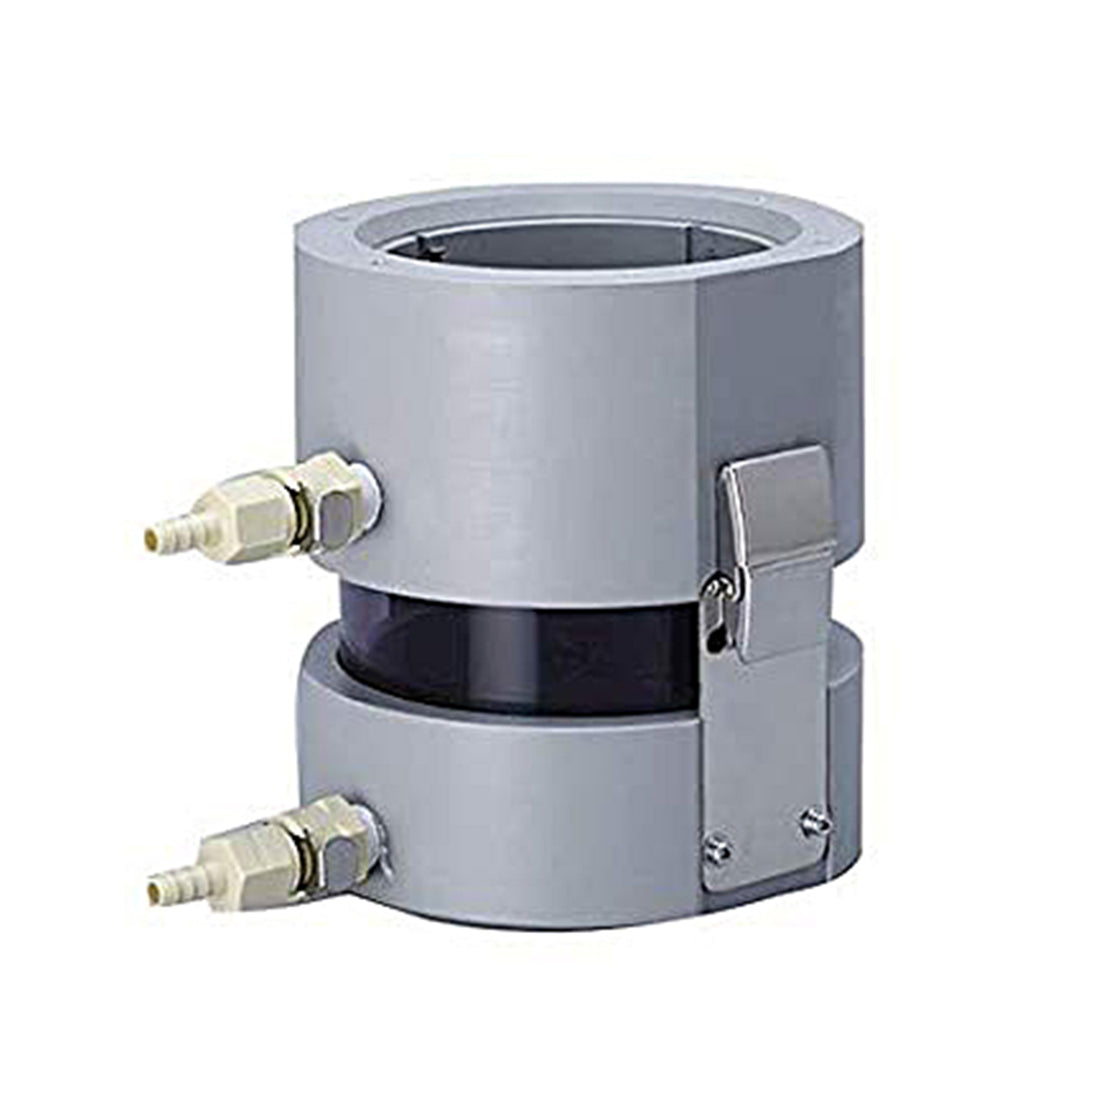 Horiba Flow Cell (Chamber), Complete for U/W-50 Series Meter